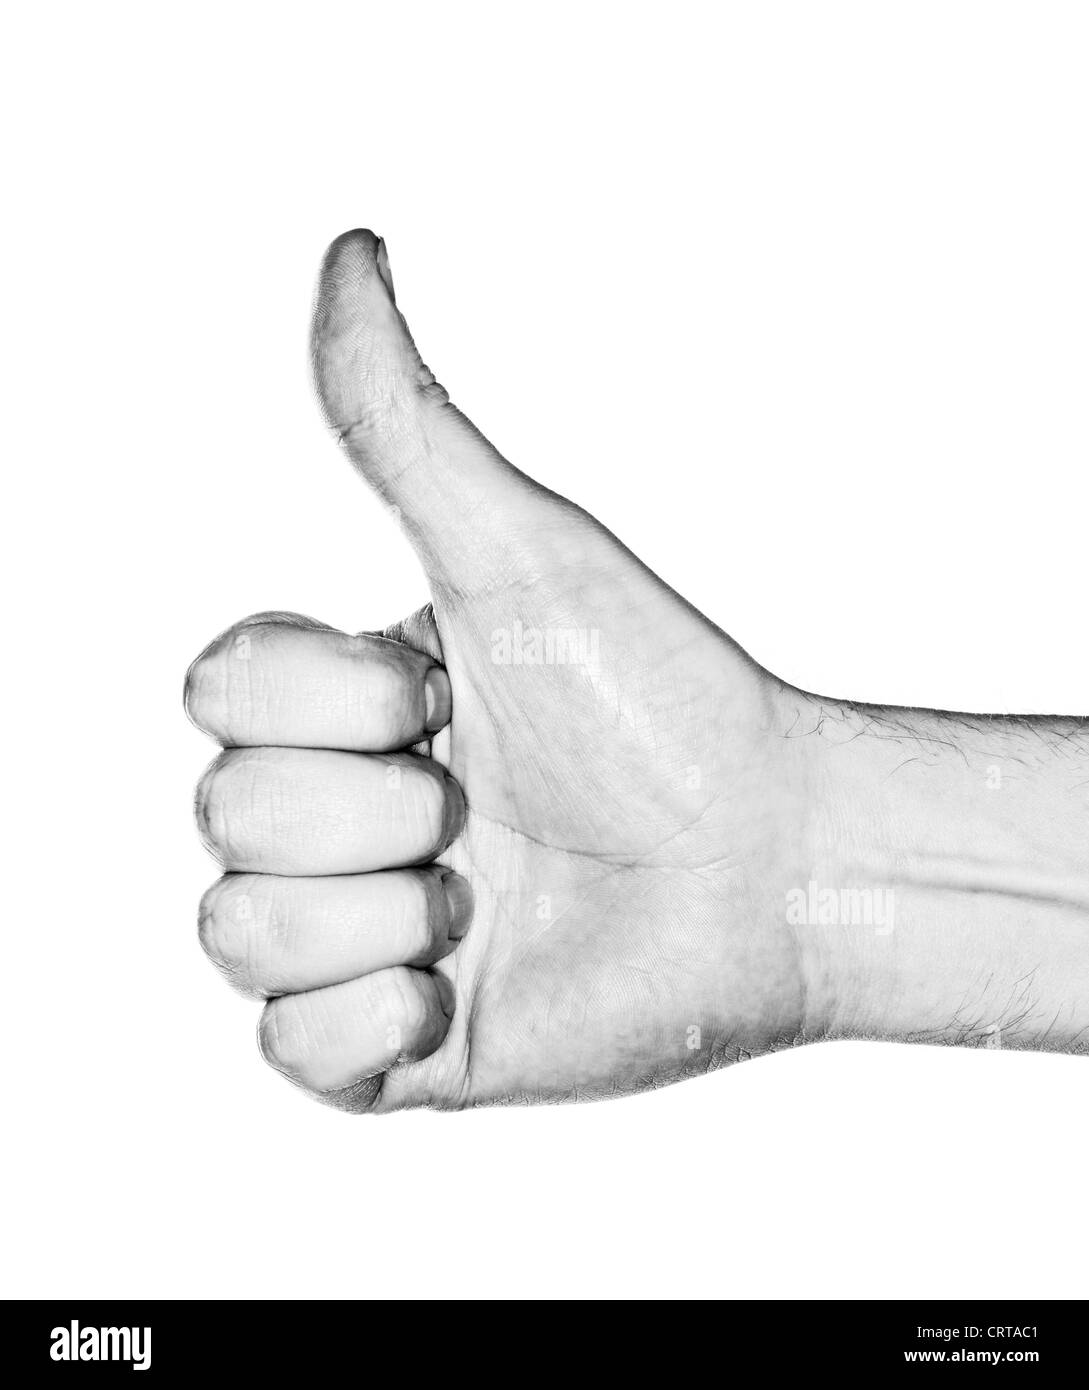 Black and white image of a hand making a 'thumb up' gesture. Photographed with ring flash. - Stock Image